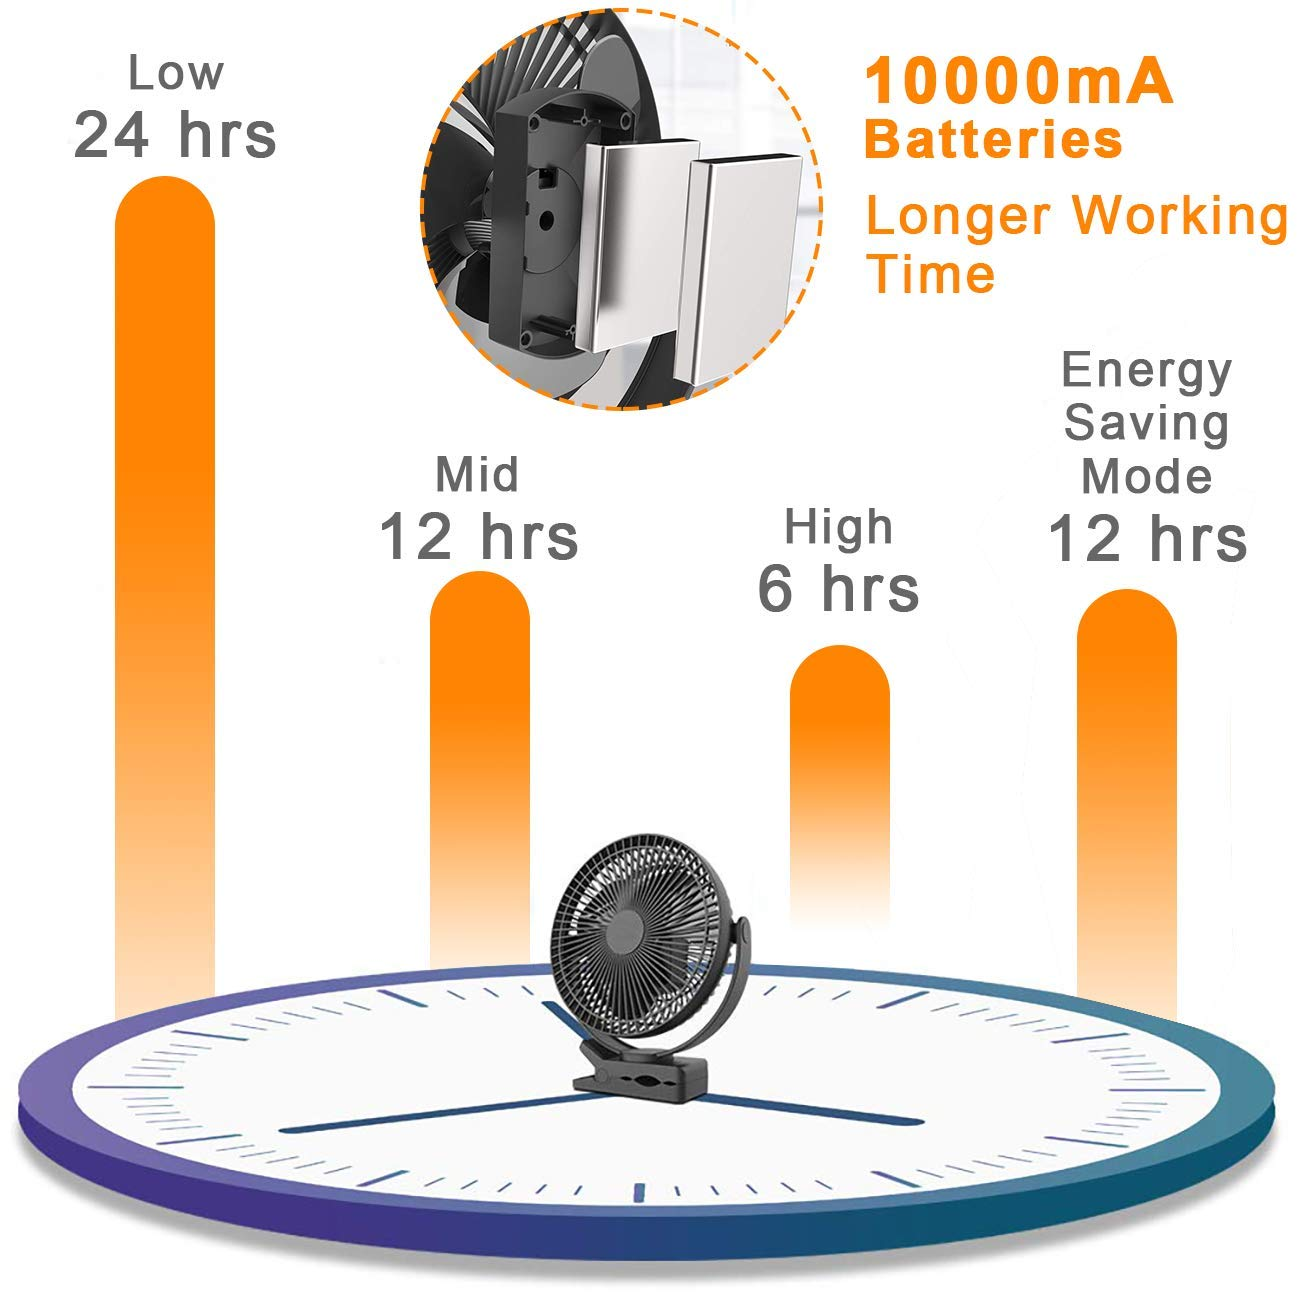 10000mAh 8 Inch Battery Operated Clip on Fan, Rechargeable Fan for Baby, 4 Speeds & 10W Fast Charging, Portable Cooling USB Fan for Baby Stroller Golf Cart Car Gym Treadmill,2 in 1 Desk&Clip Fan-Black by Gazeled (Image #3)